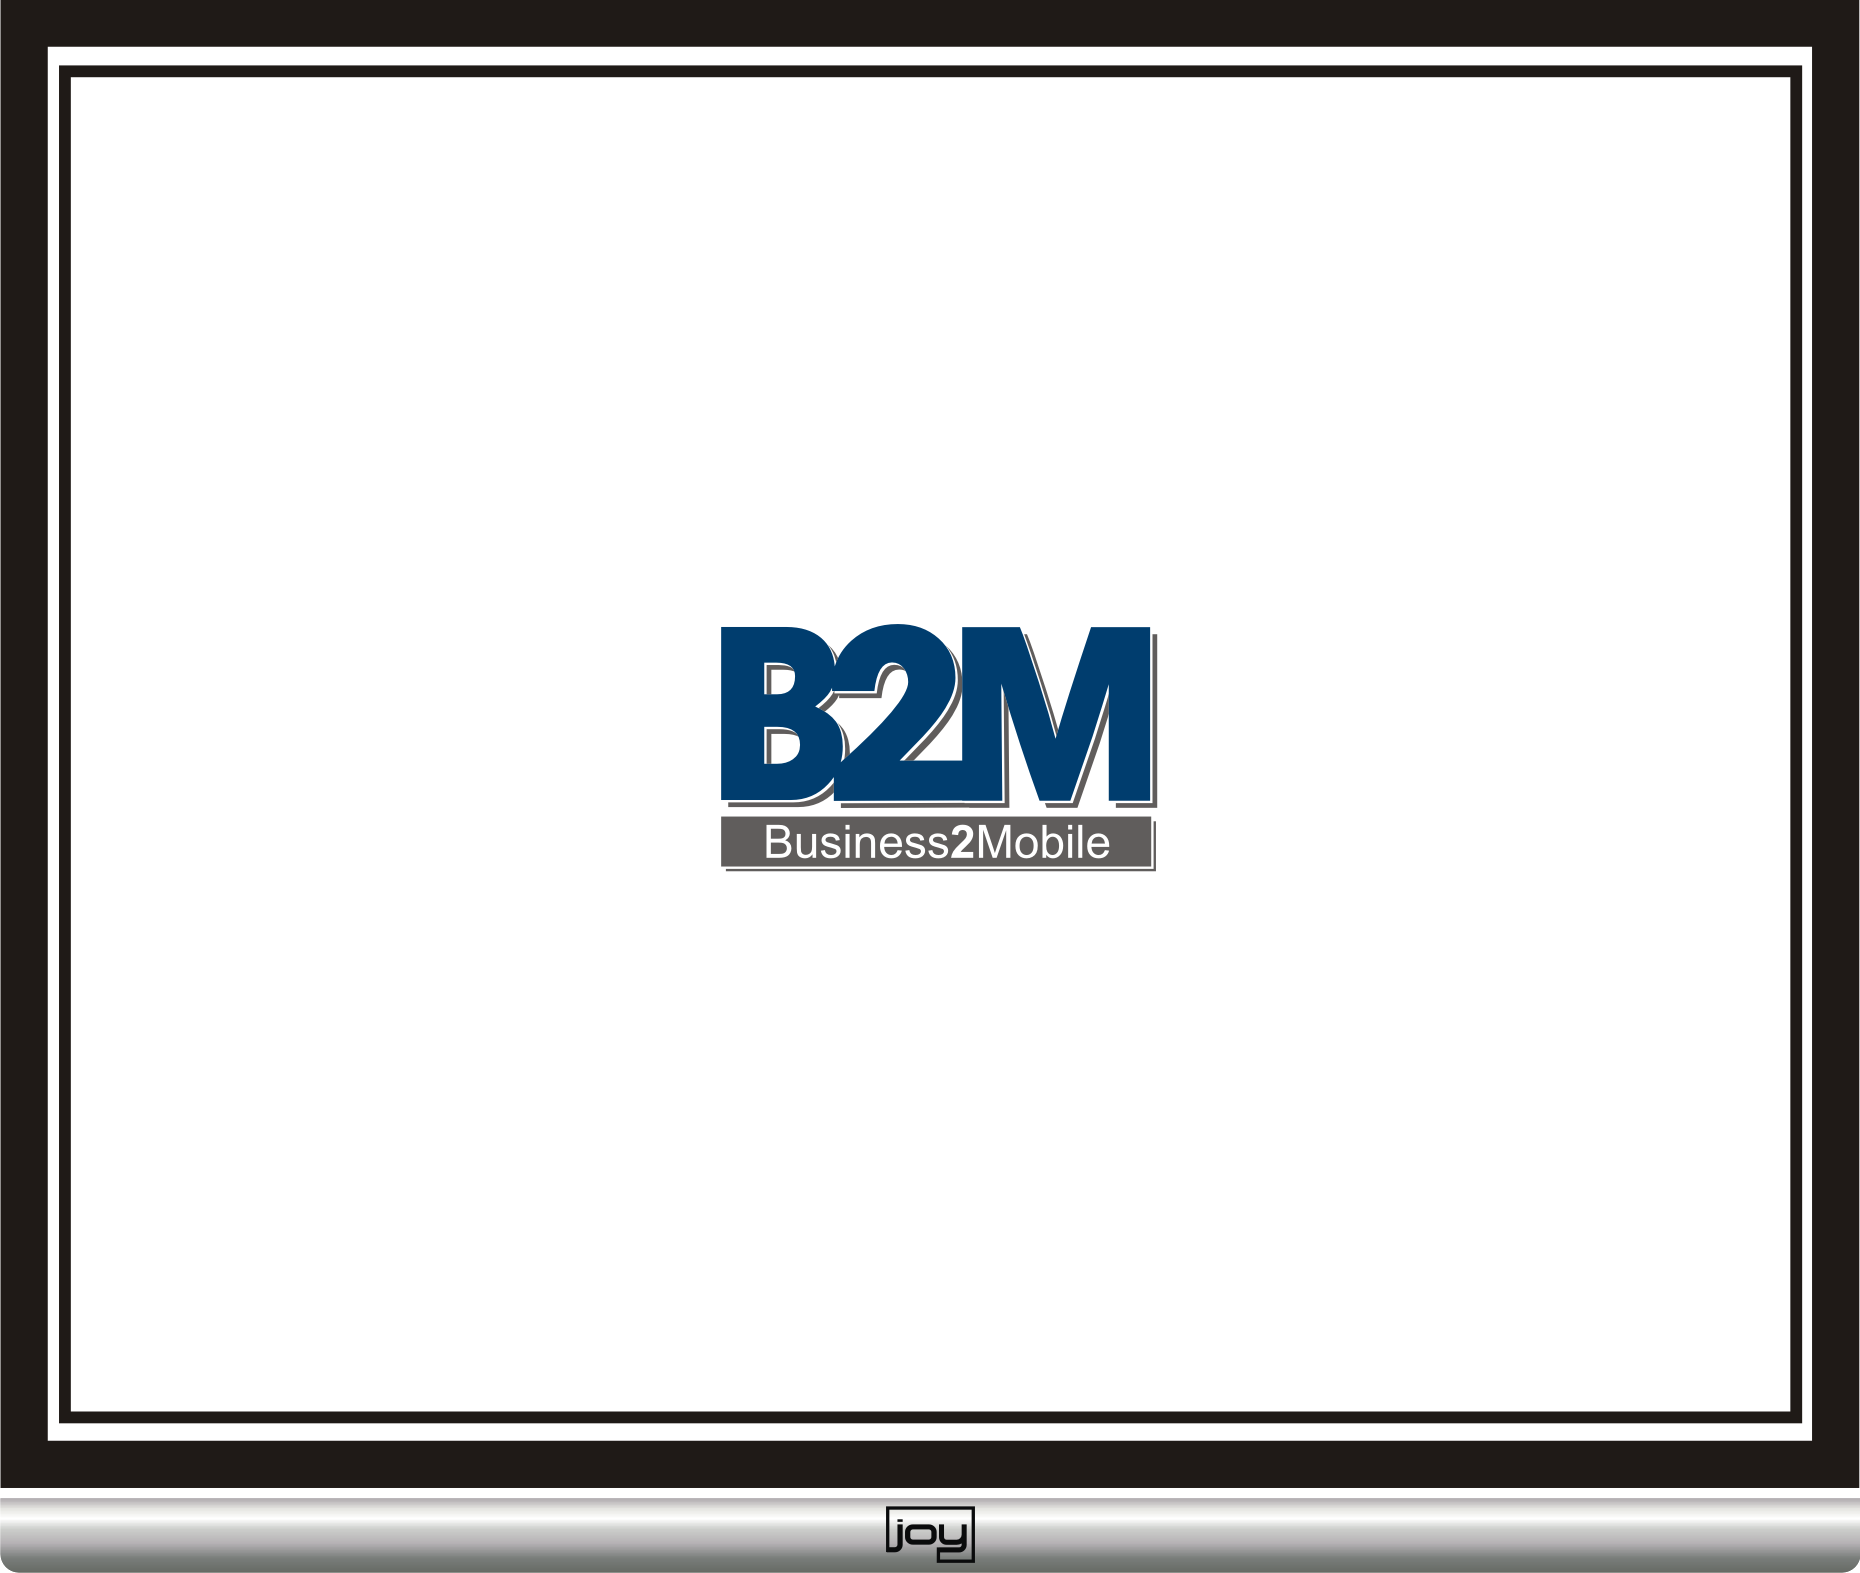 Logo Design by joysetiawan - Entry No. 39 in the Logo Design Contest Logo Design Needed for Exciting New Company Business2Mobile - B2M.